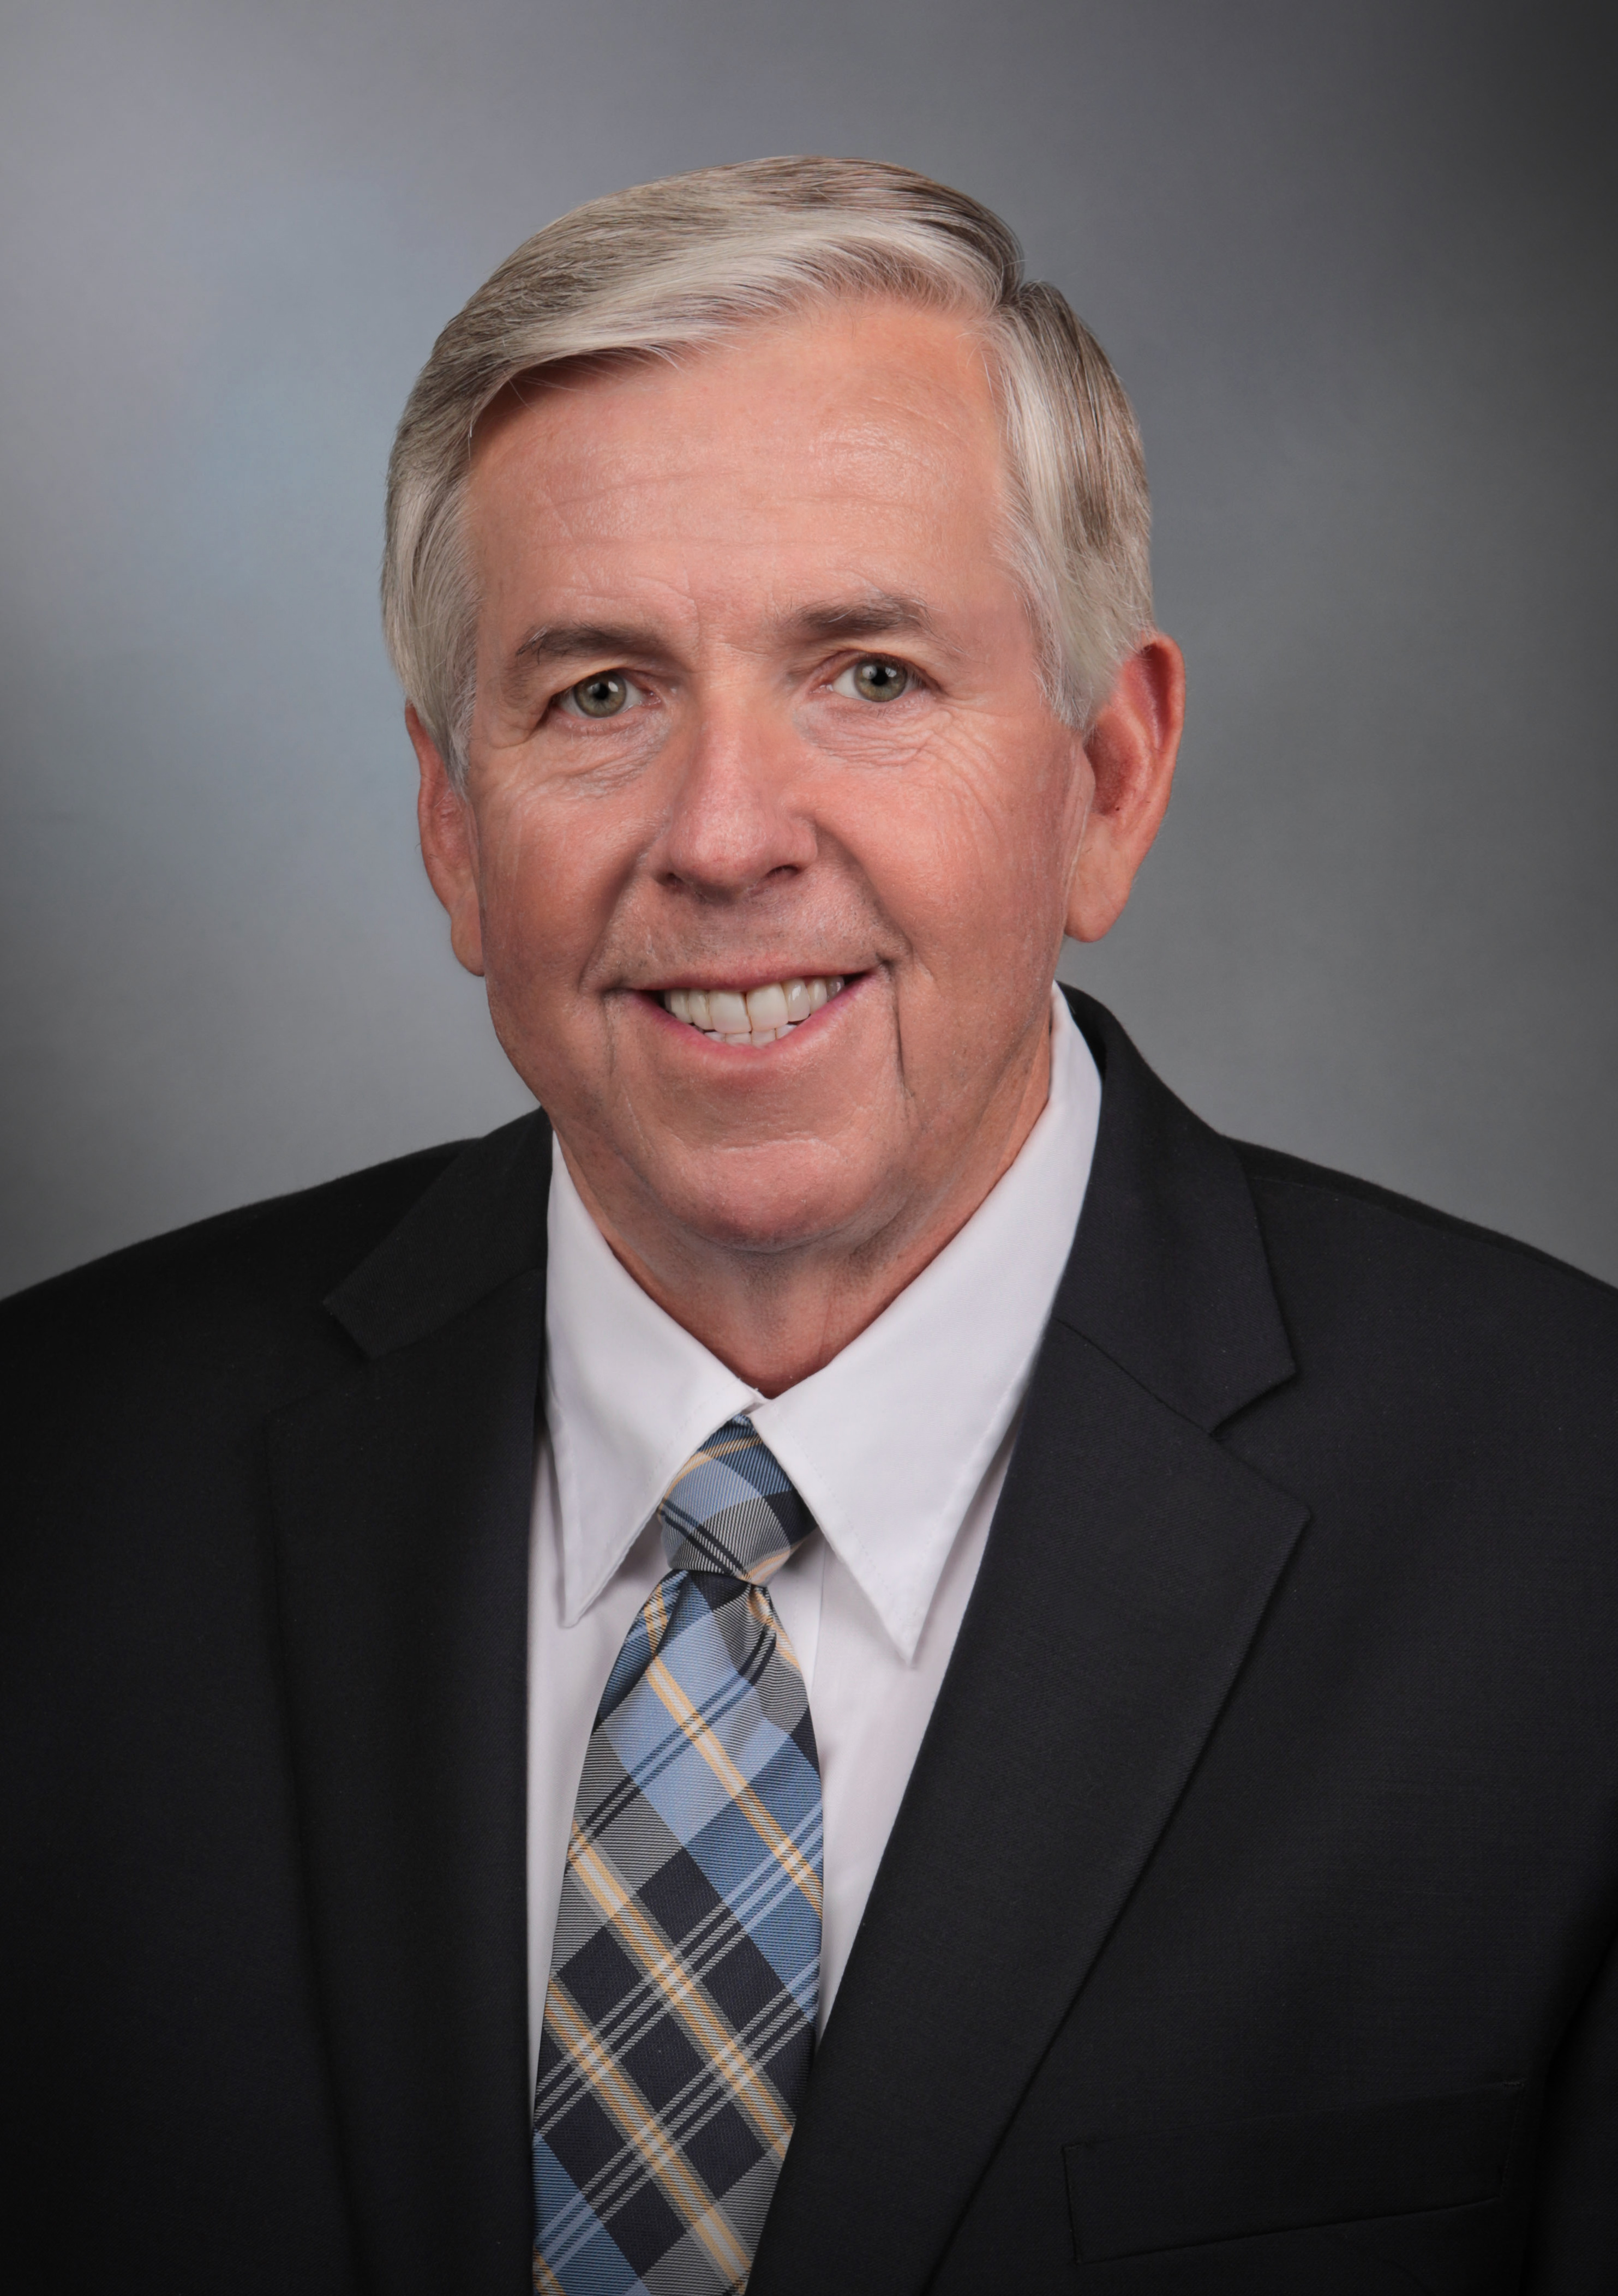 File:Mike Parson official photo.jpg